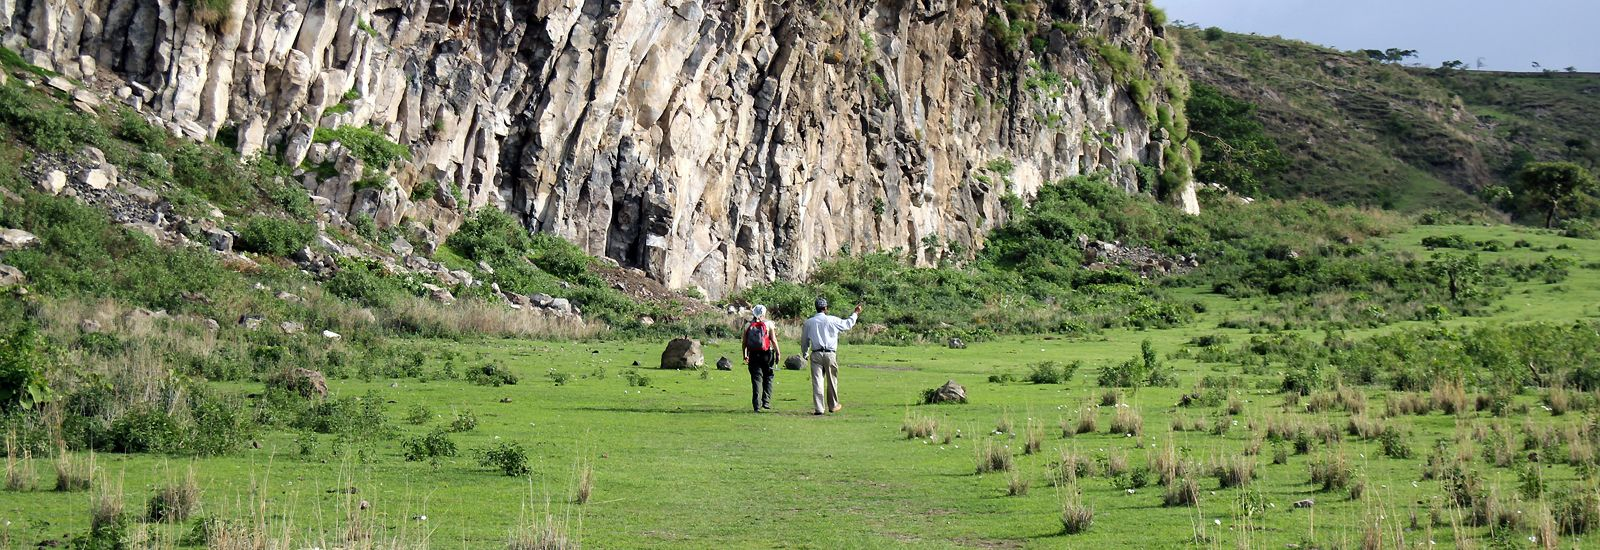 Two people walking outside in grassland with a cliff to the left